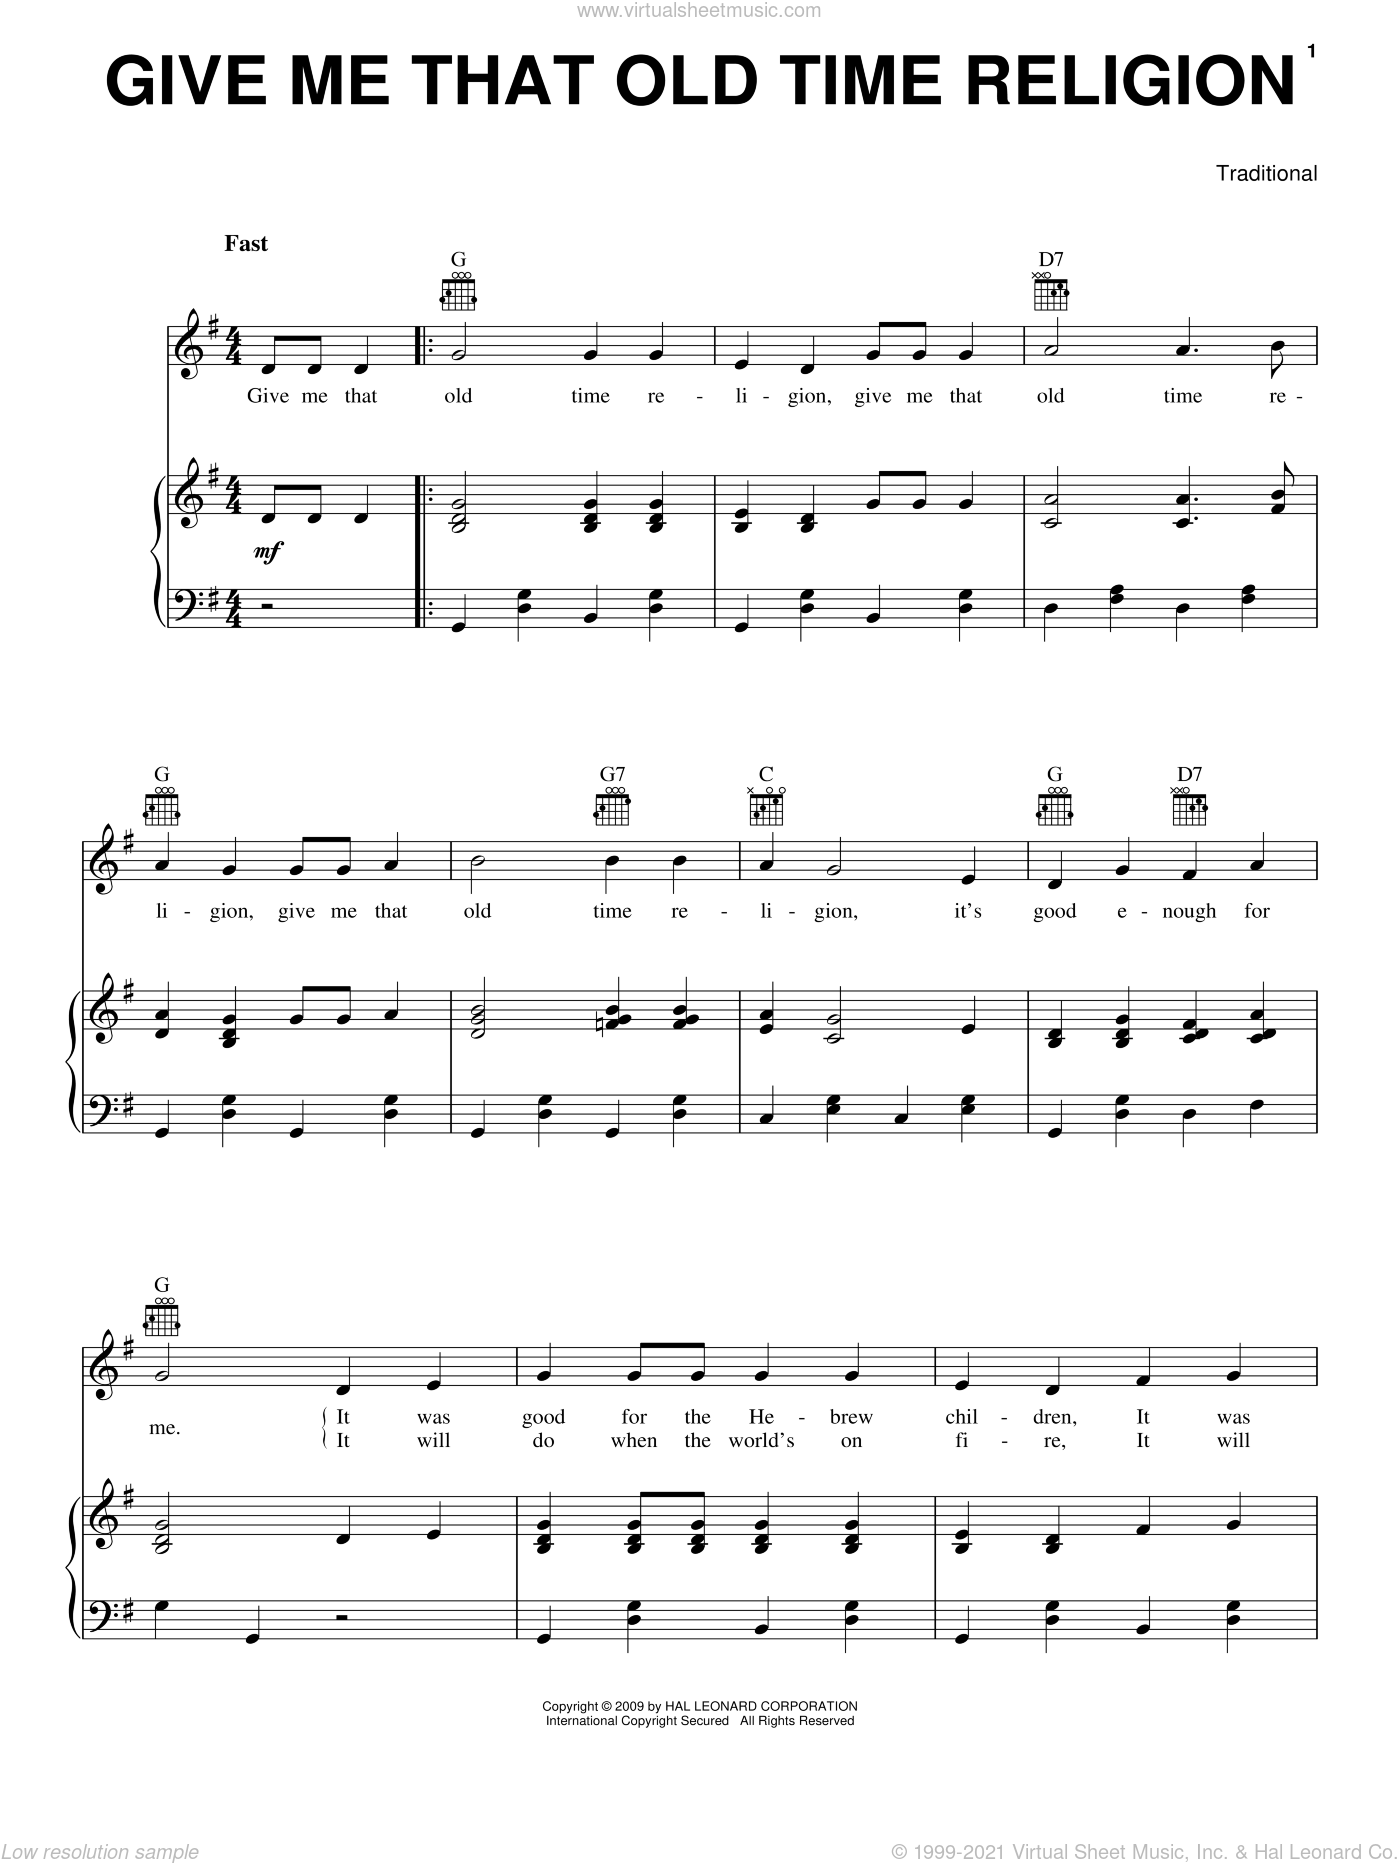 Give Me That Old Time Religion sheet music for voice, piano or guitar